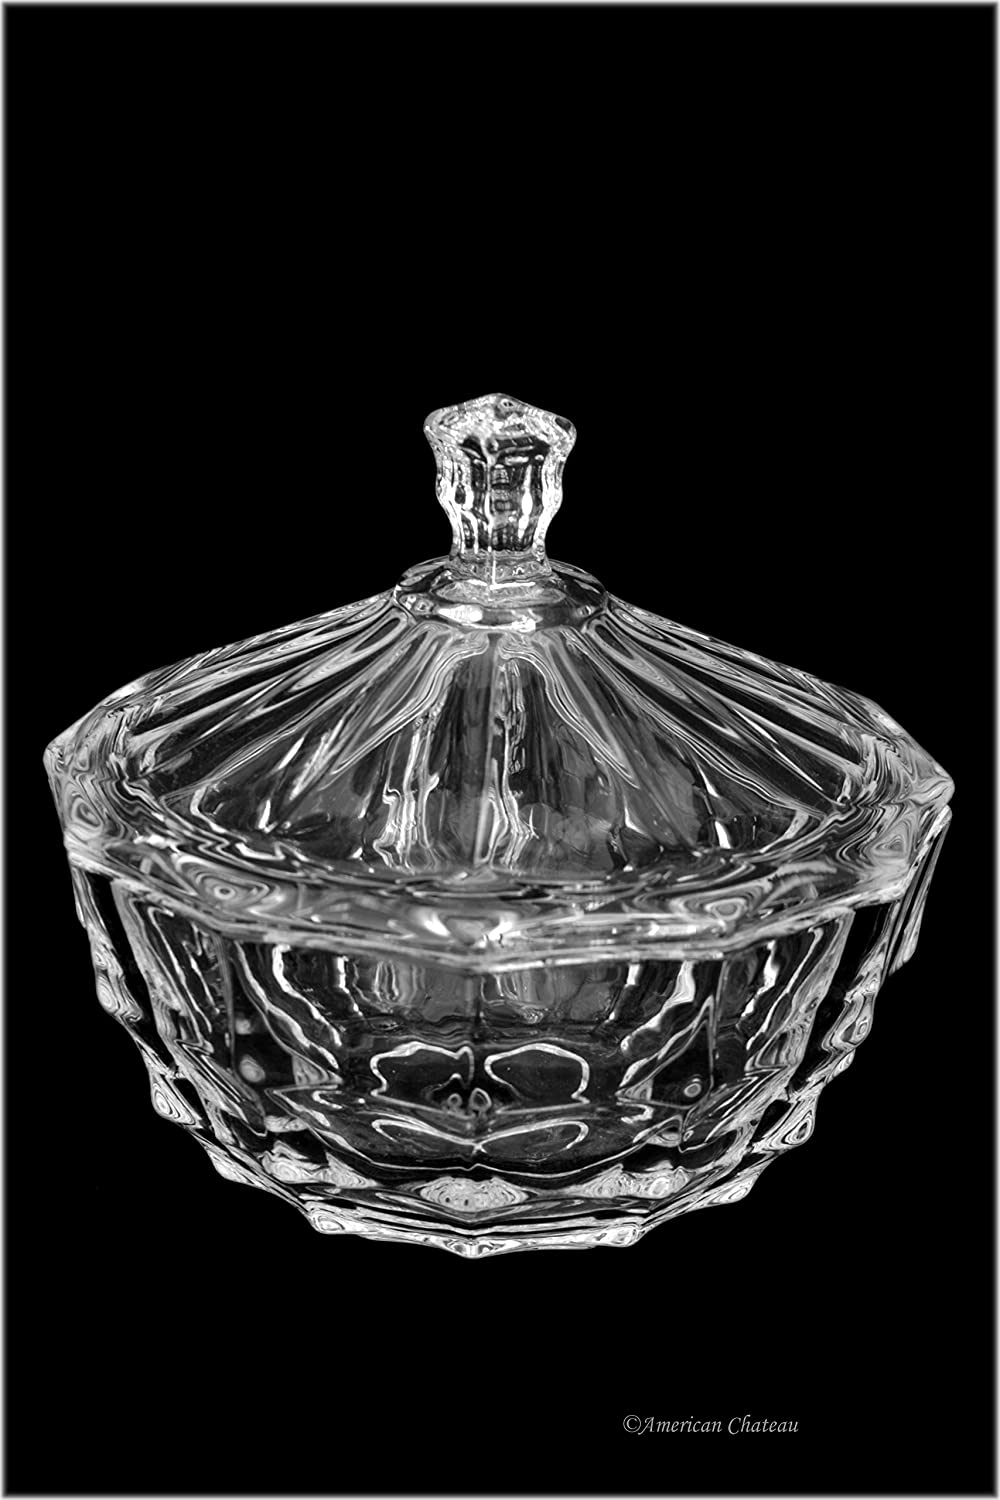 Art-Nouveau Vintage-Style Lead Free Glass Candy Dish Bowl with Lid American Chateau